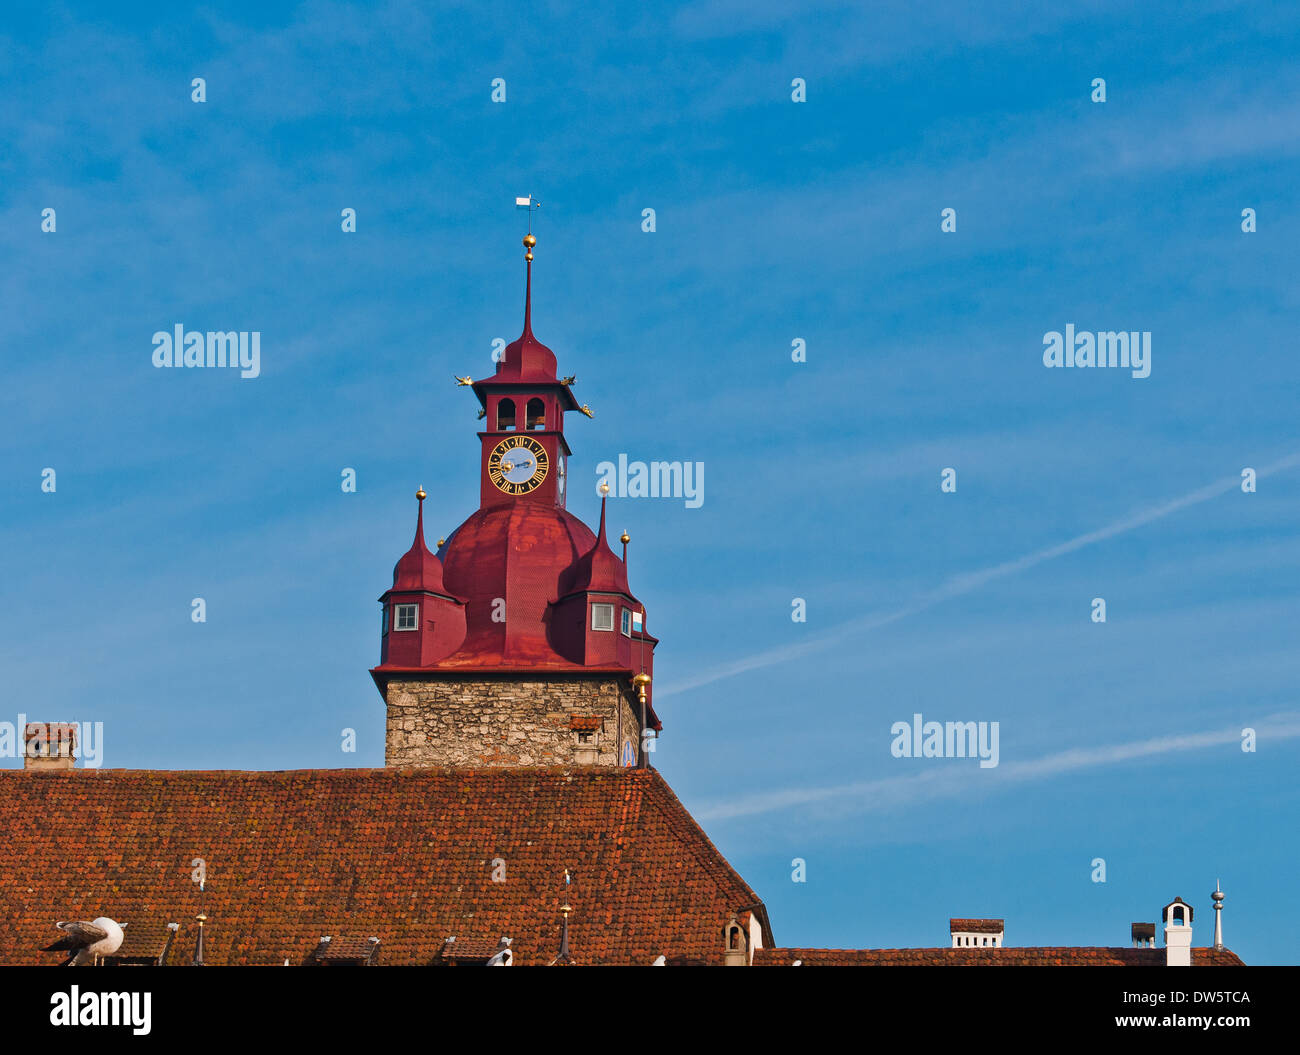 View Of Red Clock Tower On Blue Skies In The City Of Luzern, Switzerland